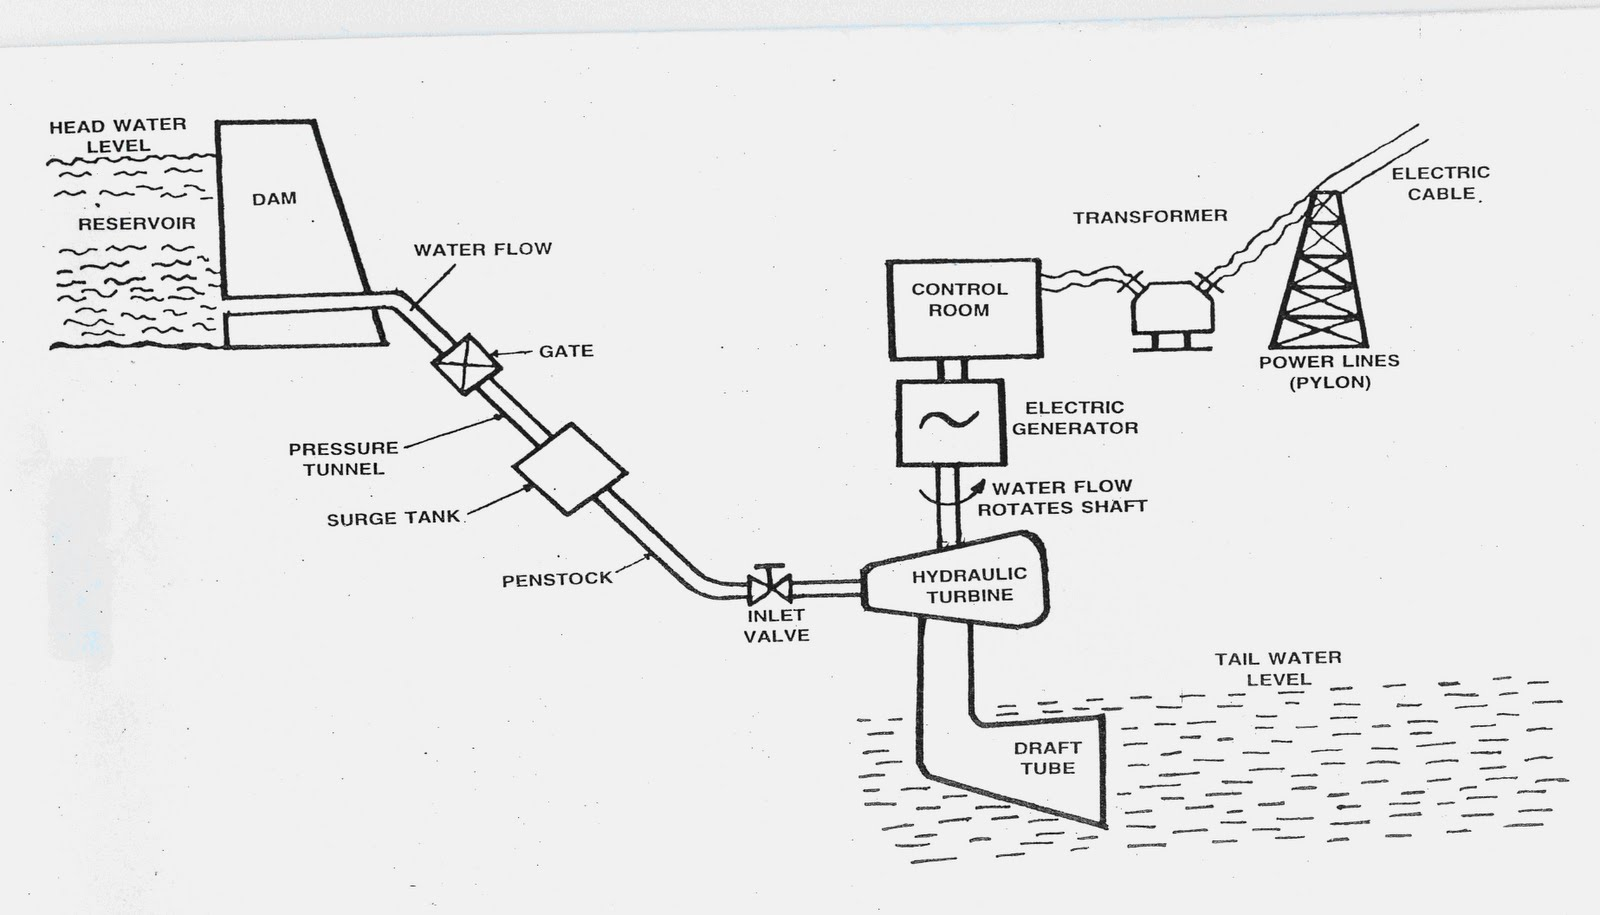 Diesel Power Plant Layout And Working Wiring Library Hydro Diagram Nuclearpower Planthydro Electric Plantdiesel Plantsteam